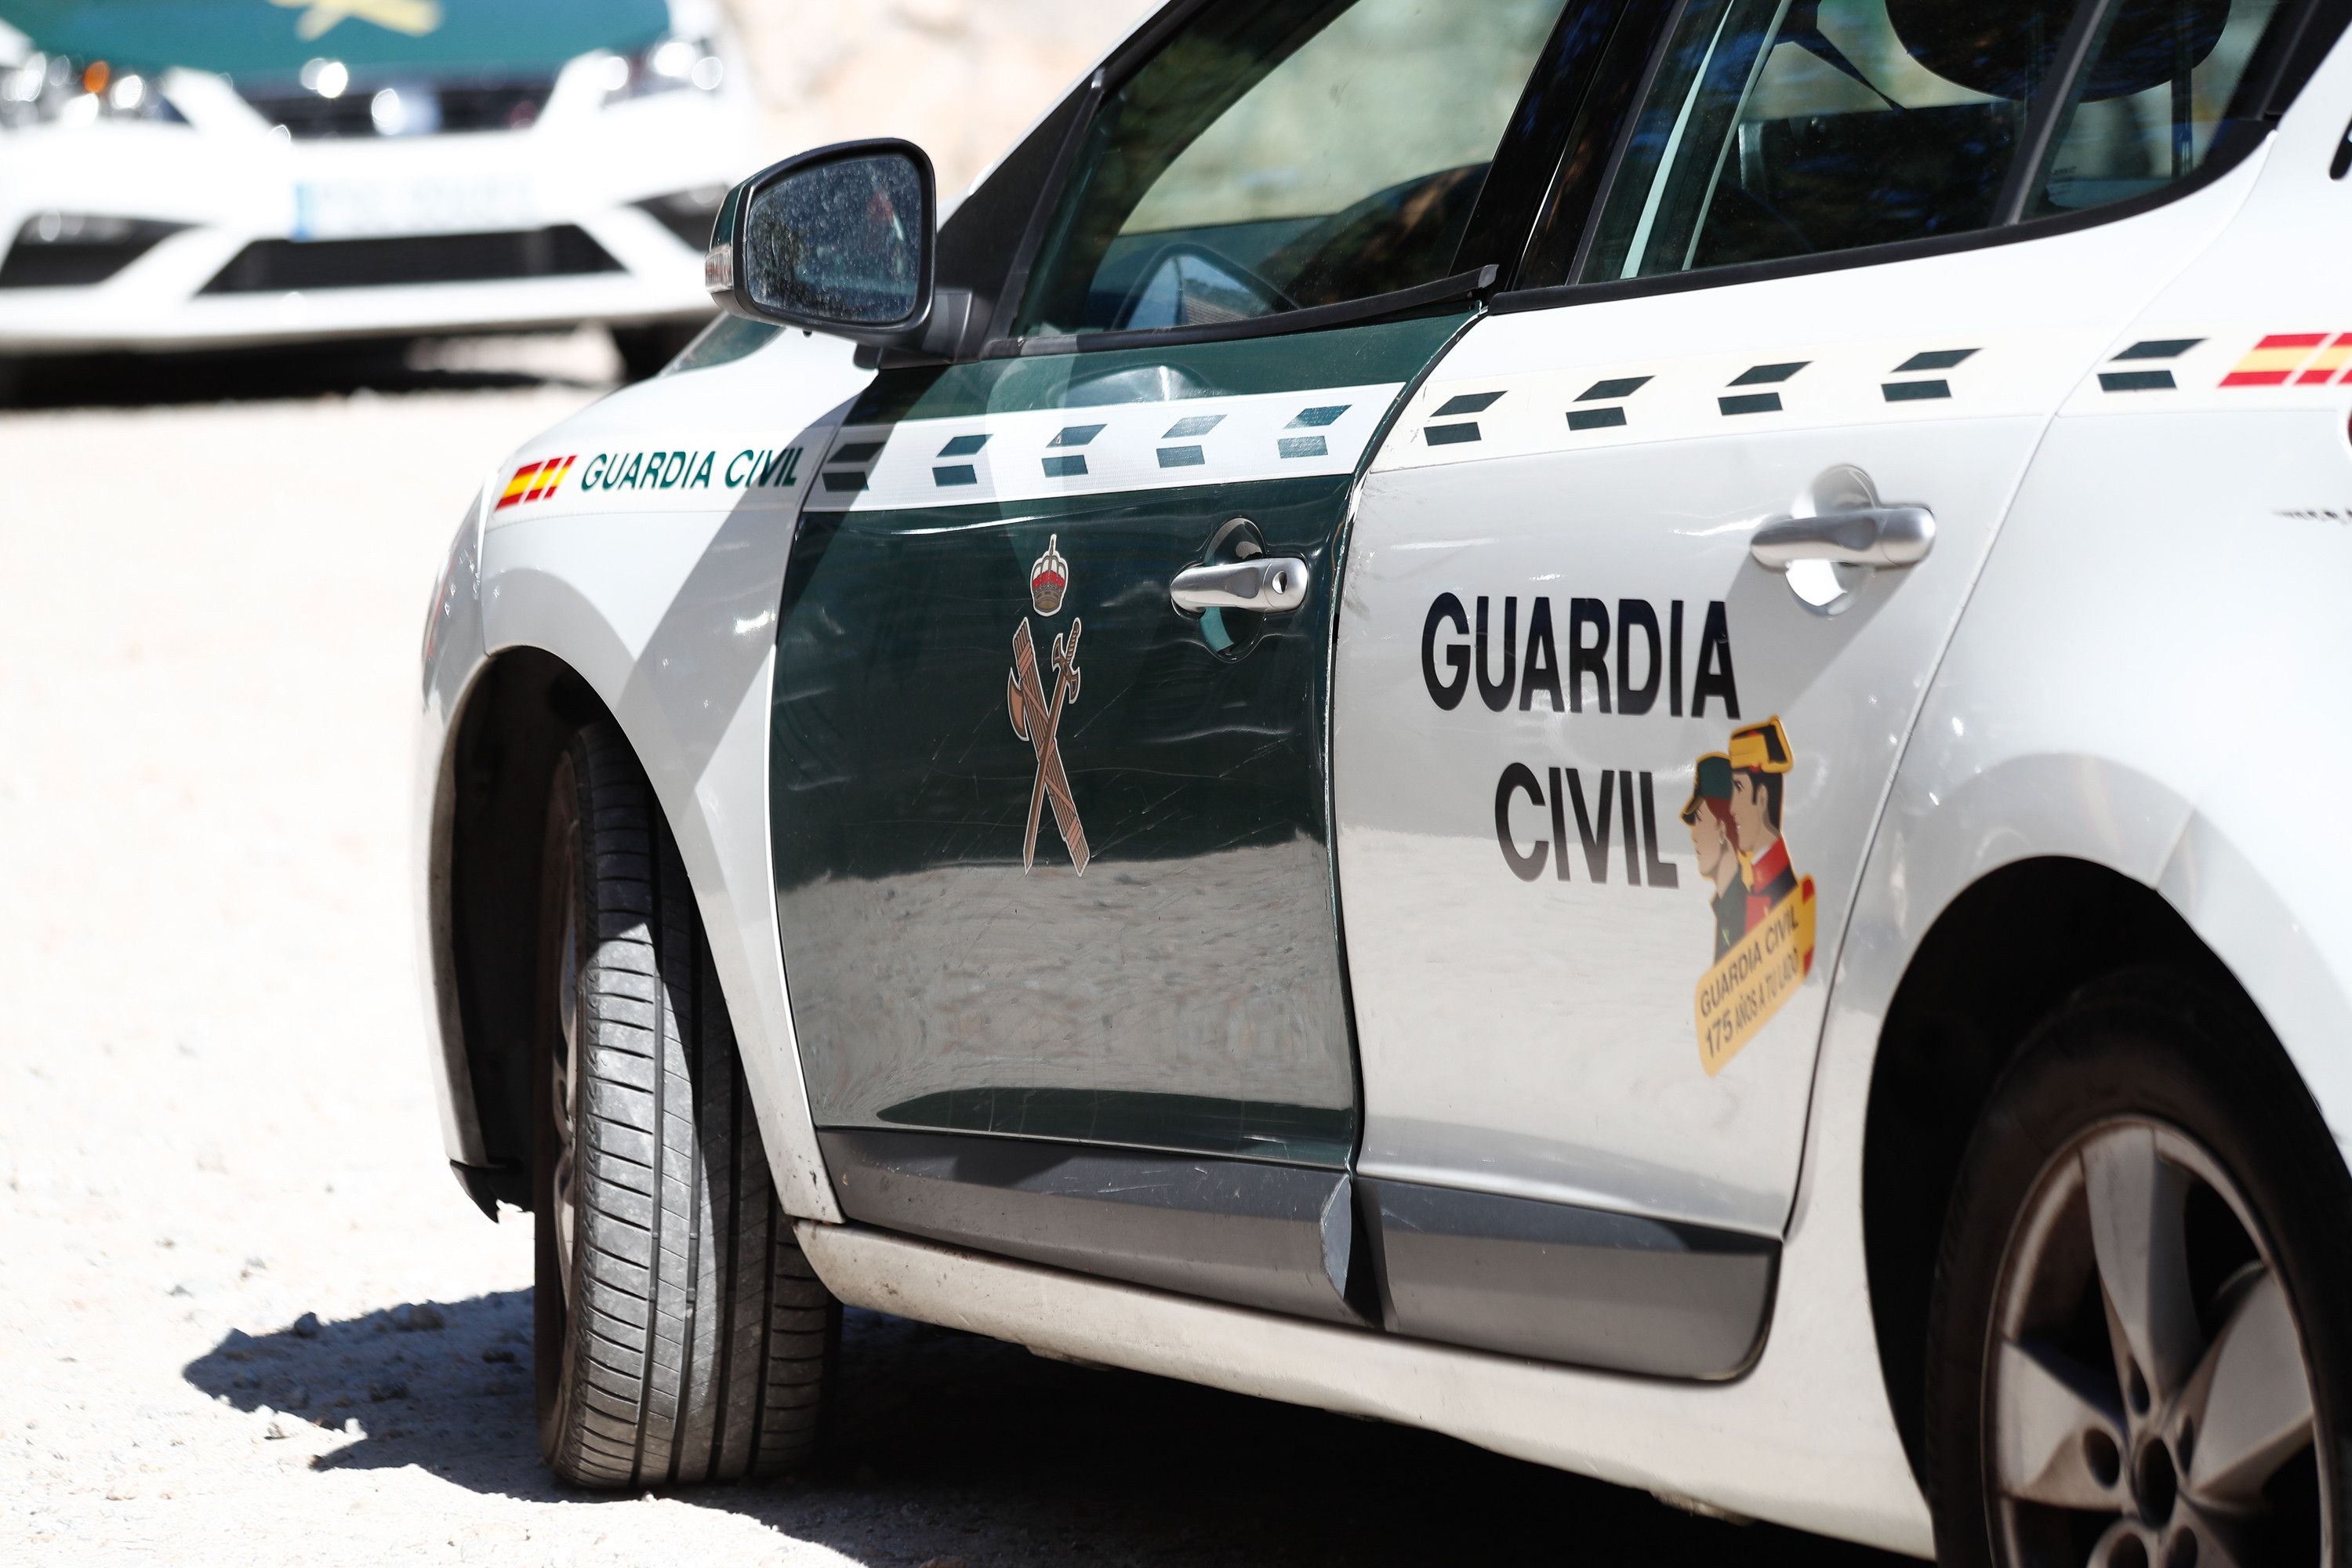 La Guardia Civil disuelve una multitudinaria pelea por el intento de okupación de una casa